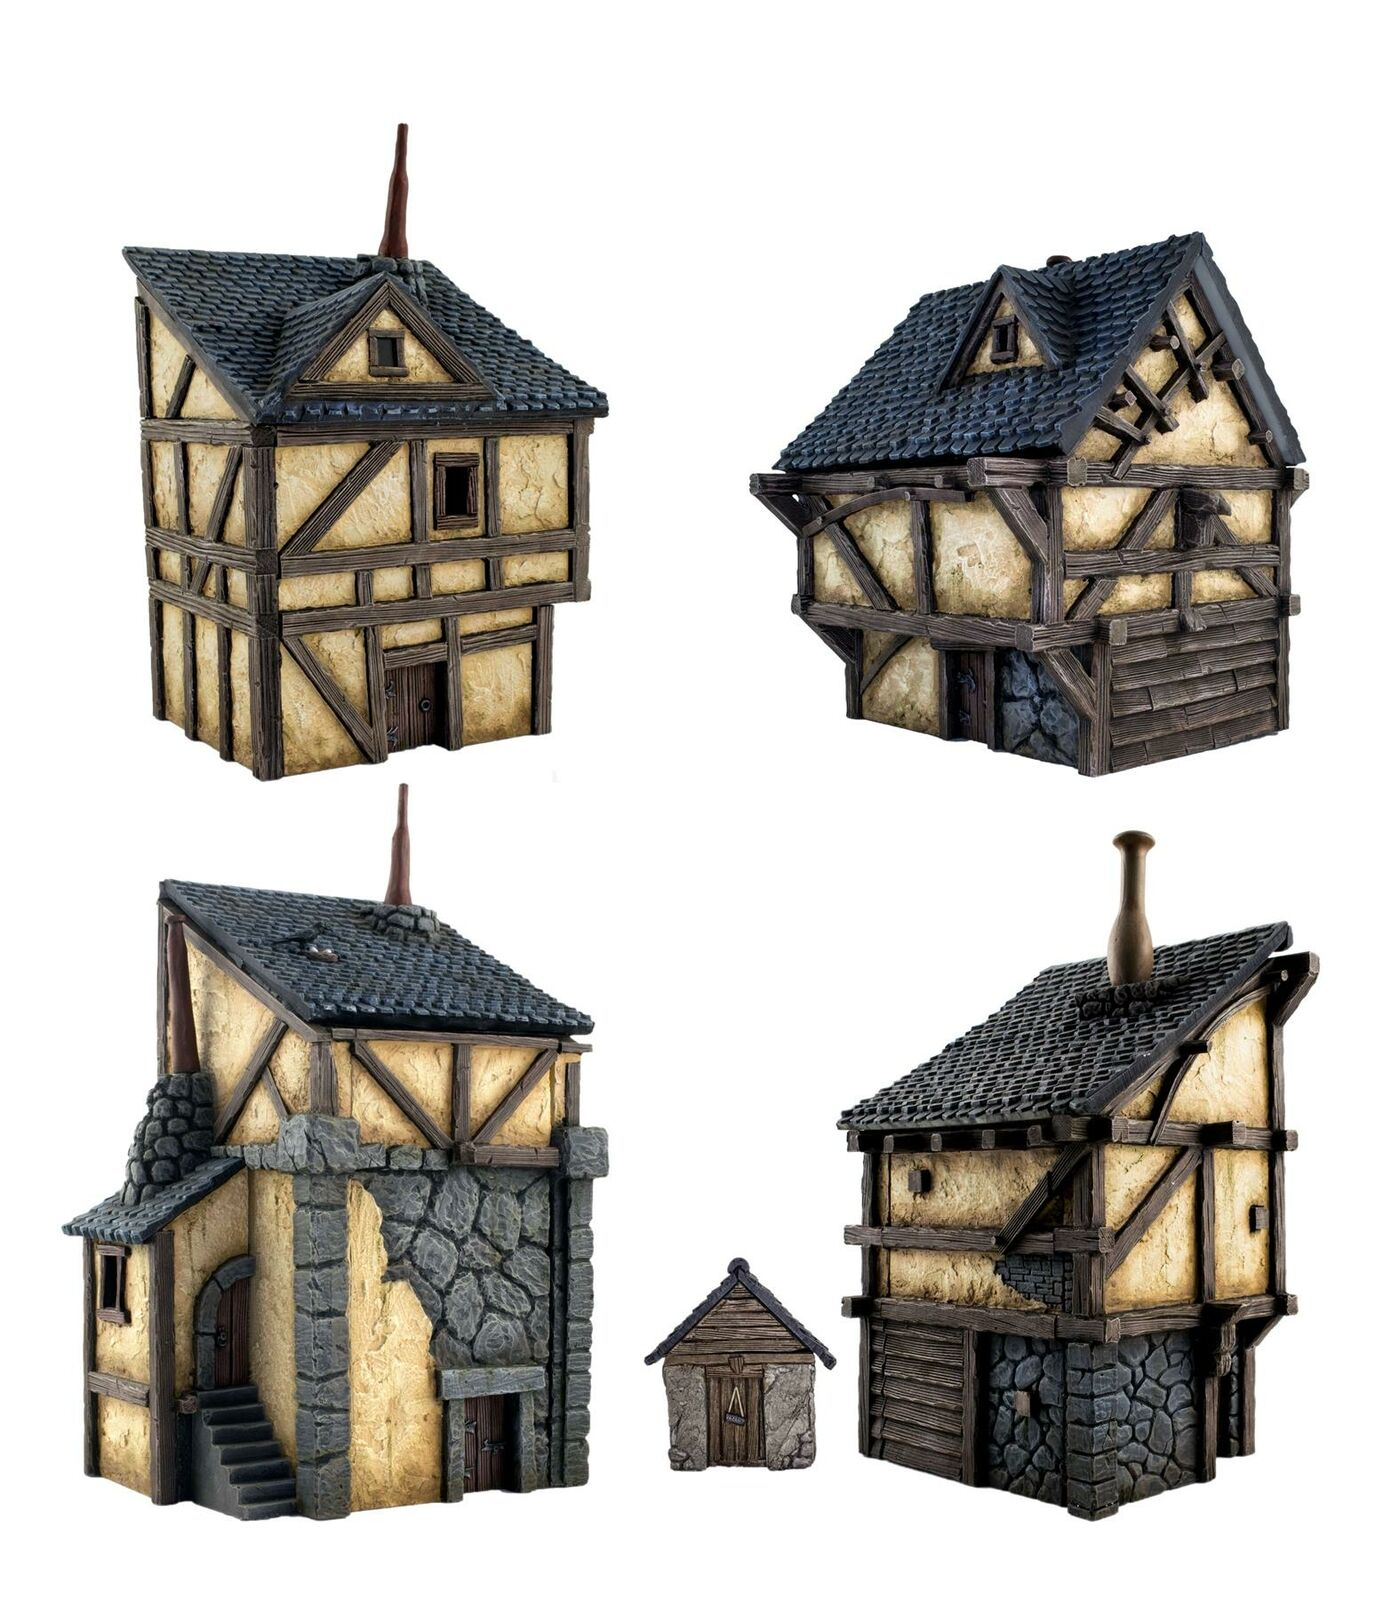 WWG Fantasy Village Village Village Set of 4 Houses – 28mm Medieval